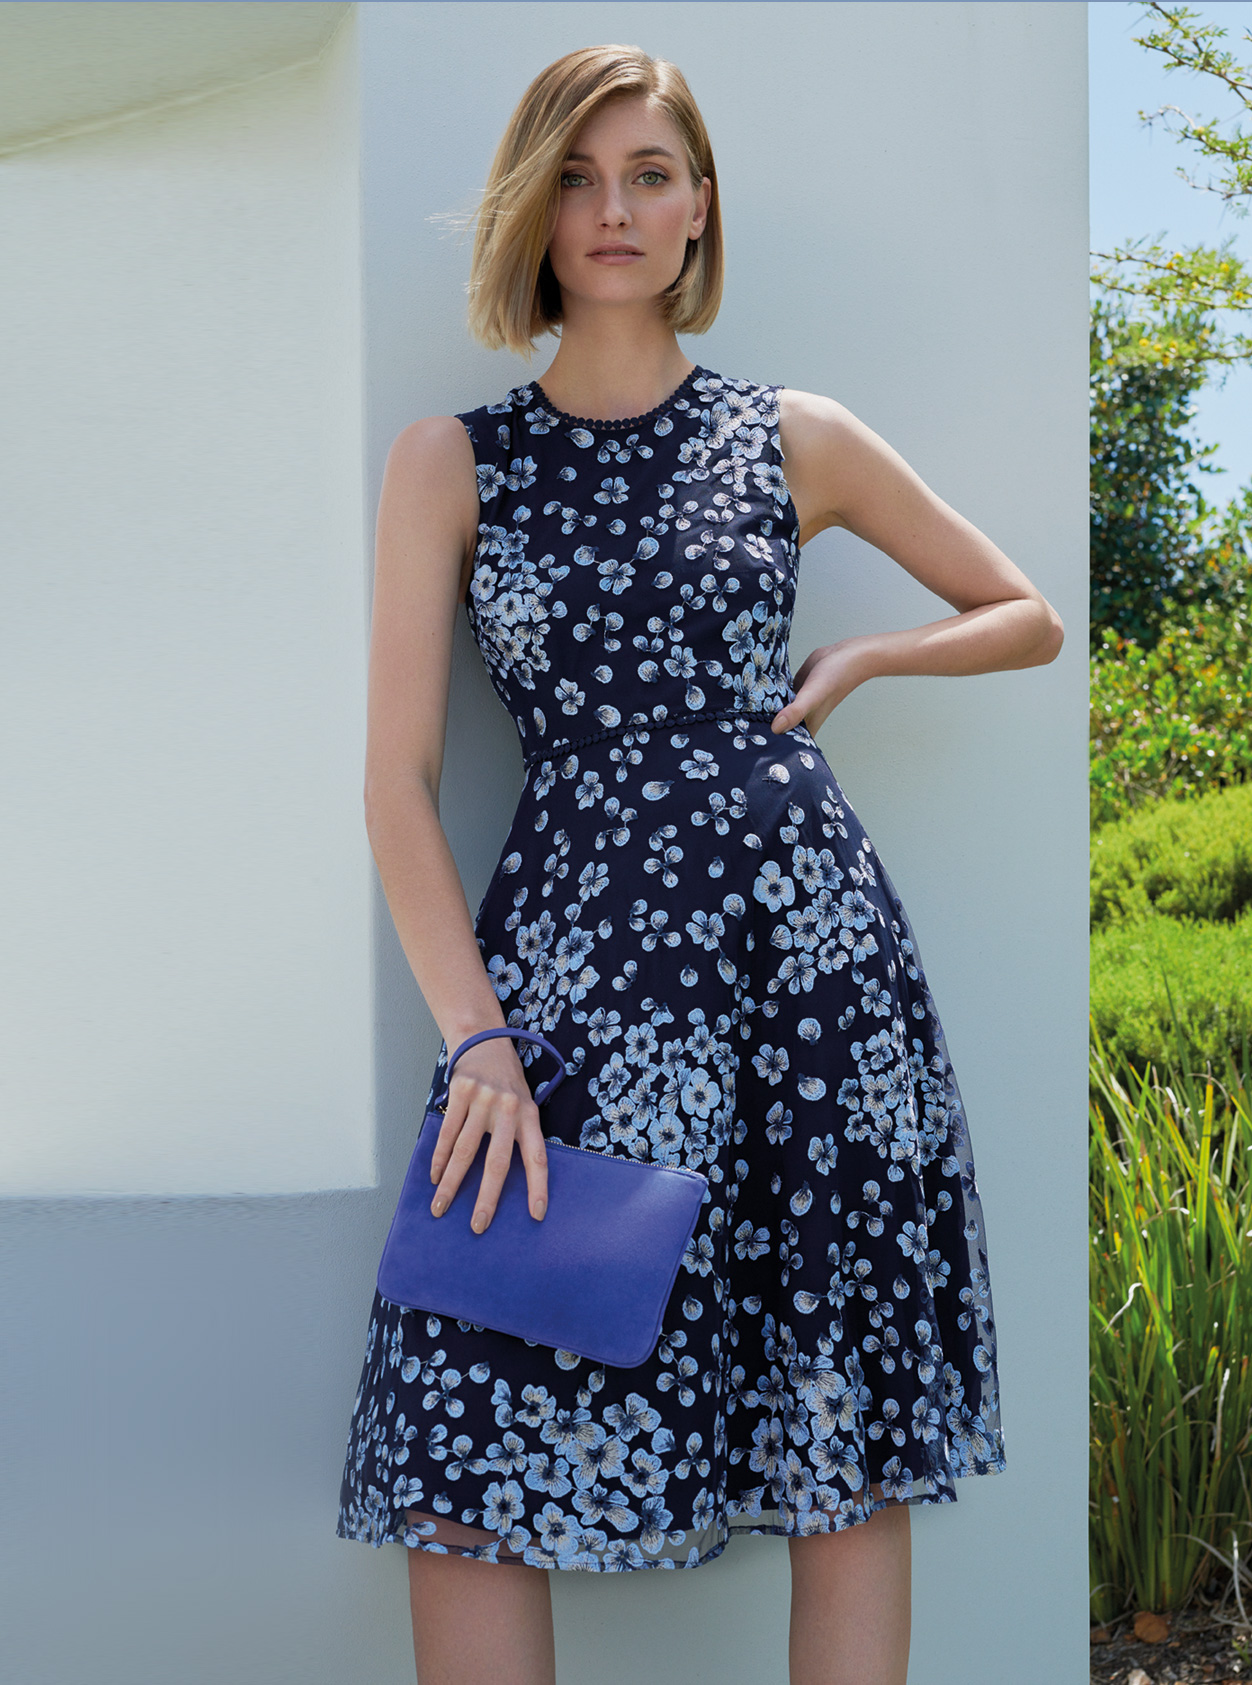 Floral fit and flare dress in blue with a matching blue wristlet clutch by Hobbs, an ideal outfit for a wedding guest.